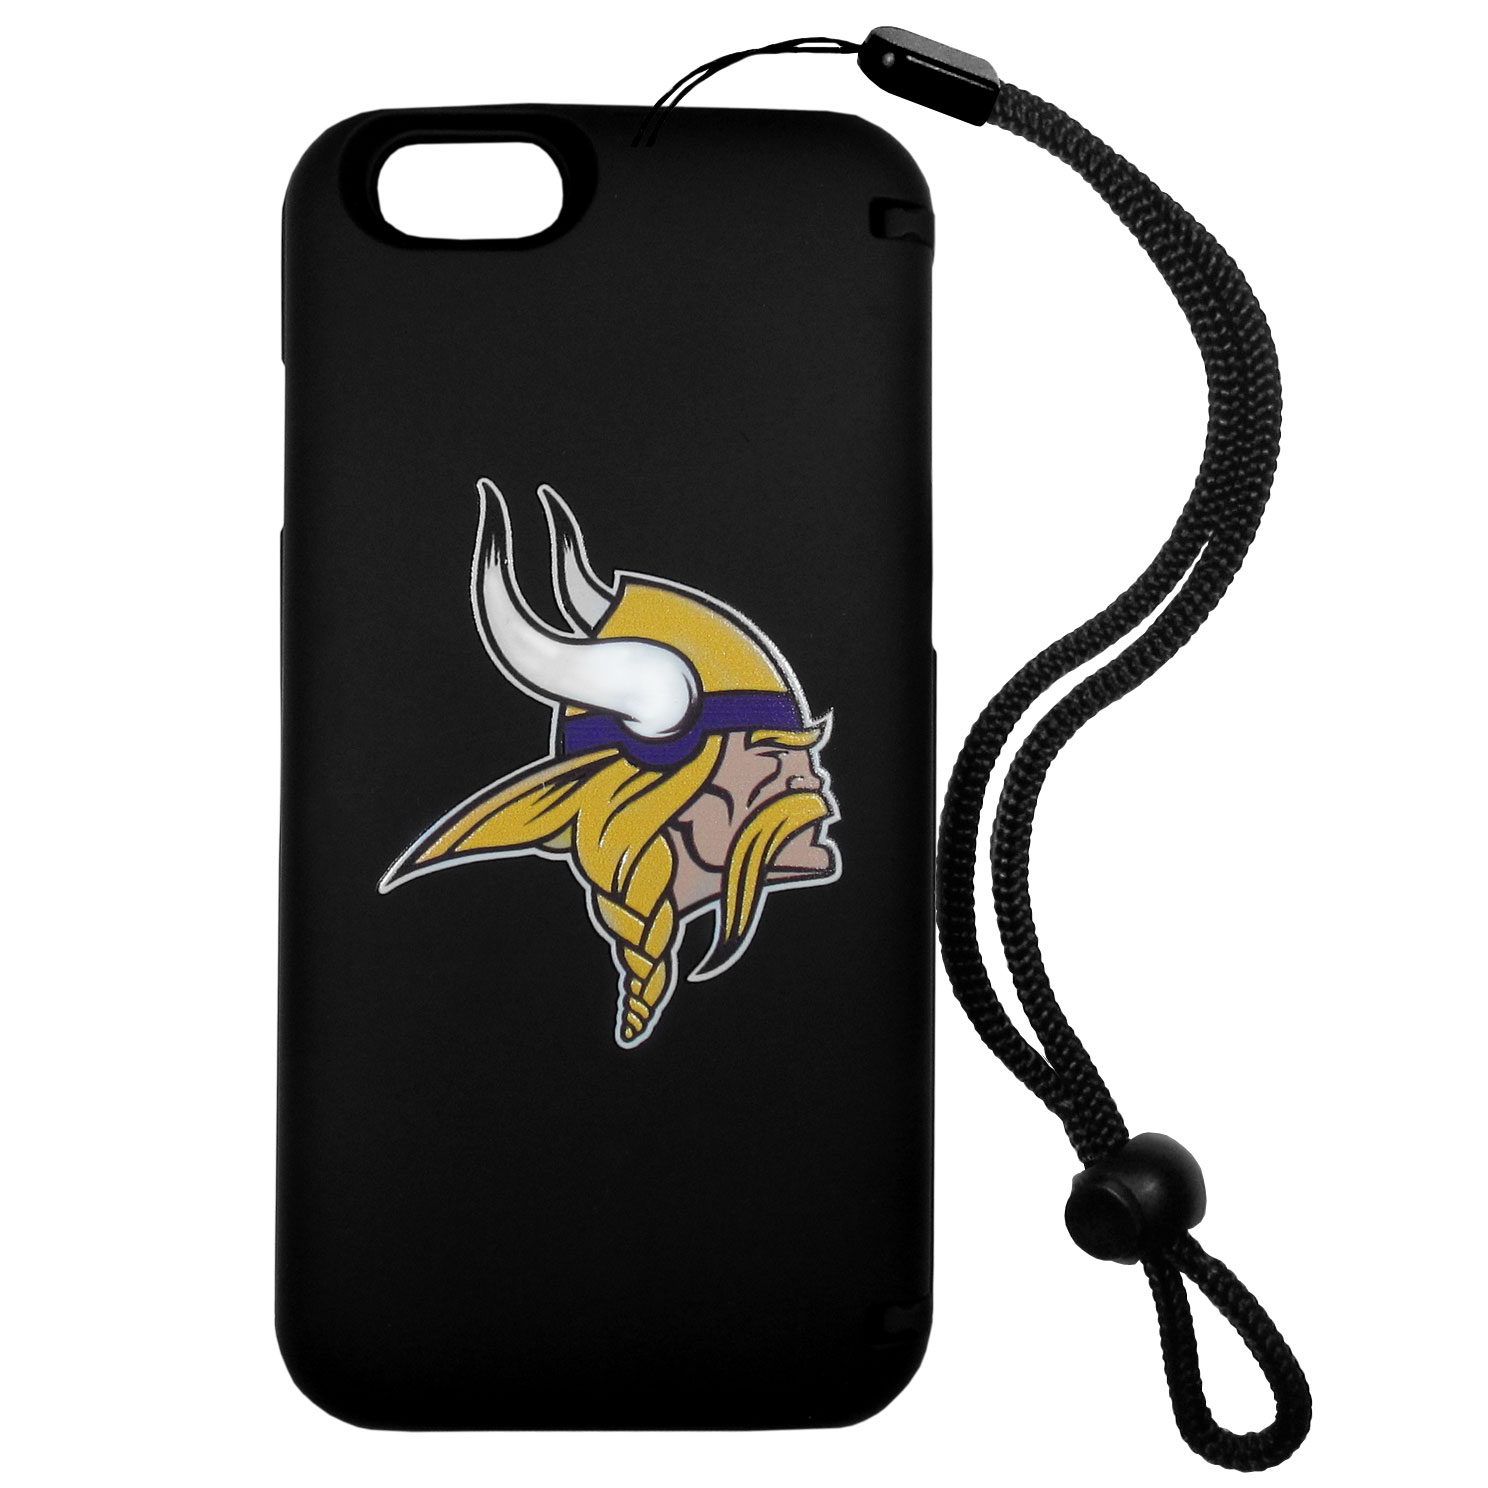 Minnesota Vikings iPhone 6 Everything Case - This case really does have everything but the kitchen sink! The hidden compartment lets you keep your cards, money and tickets to the big game safe and secure and has a compact mirror so you can make sure your game face is ready to go. It also comes with a kickstand to make chatting and watching videos a breeze. The wrist strap allows you to travel with ease with your everything case. If that's not enough, it also comes with the Minnesota Vikings logo printed in expert detail on the front.